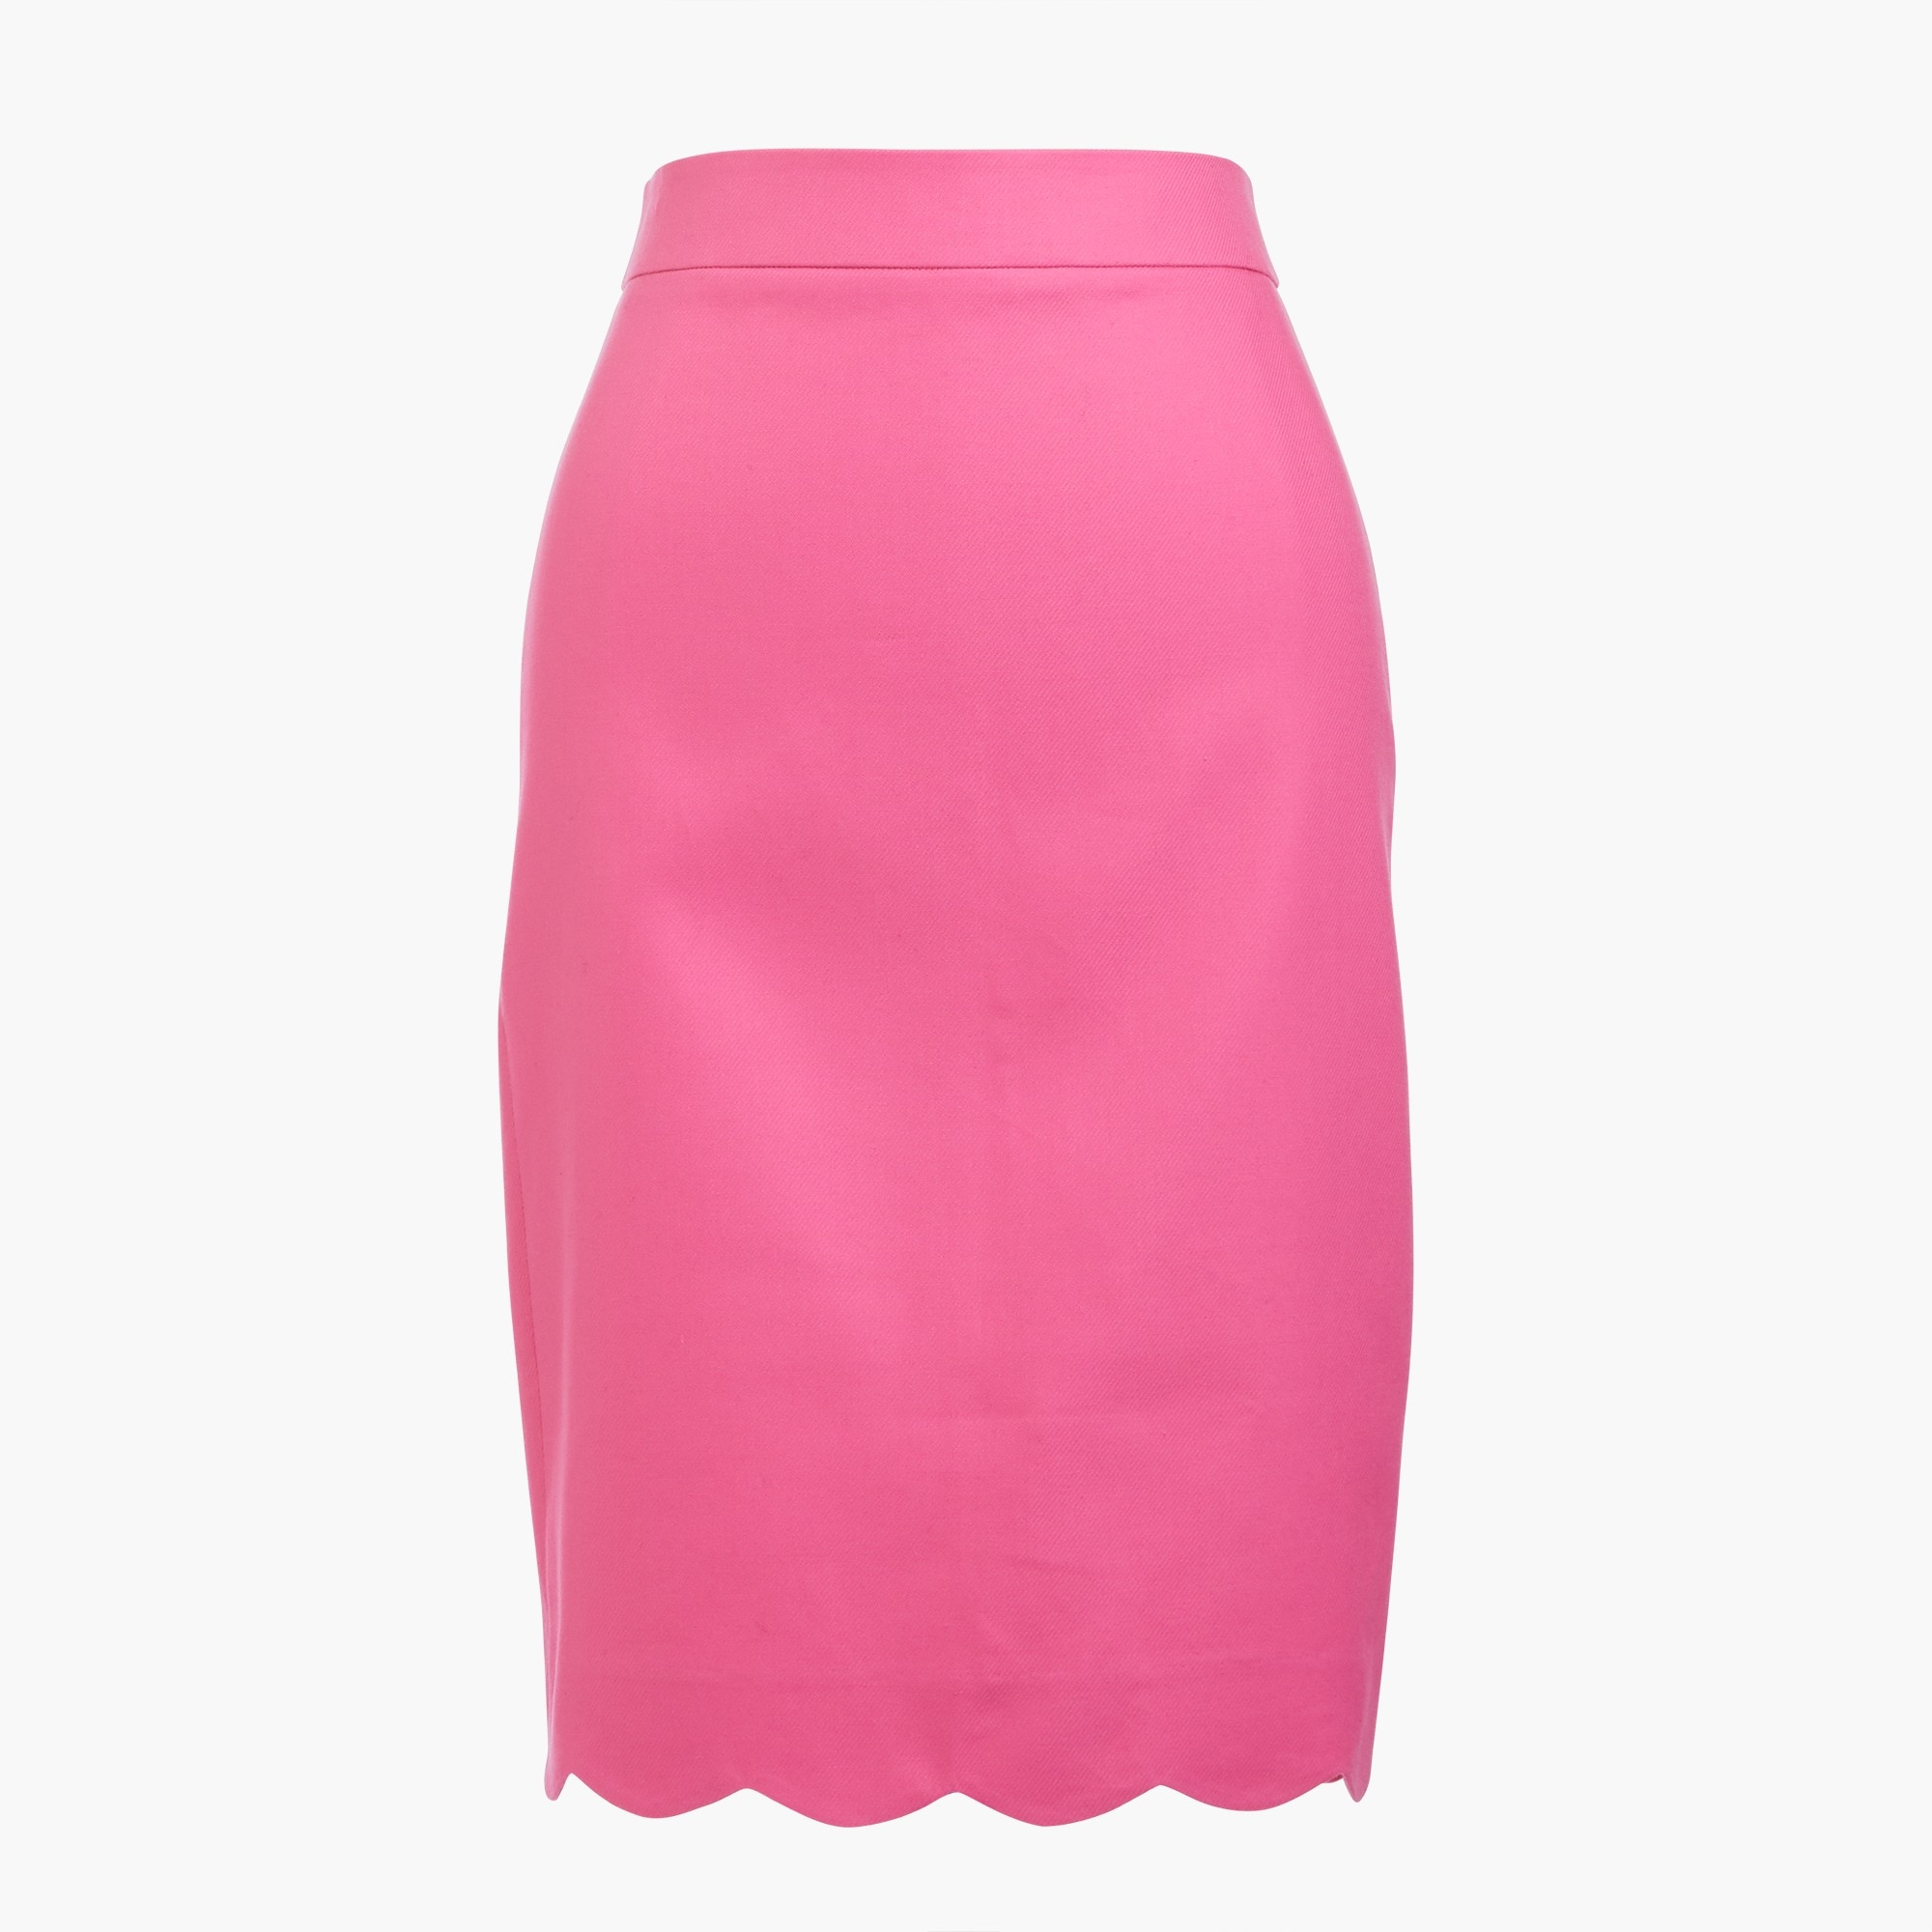 Scalloped pencil skirt